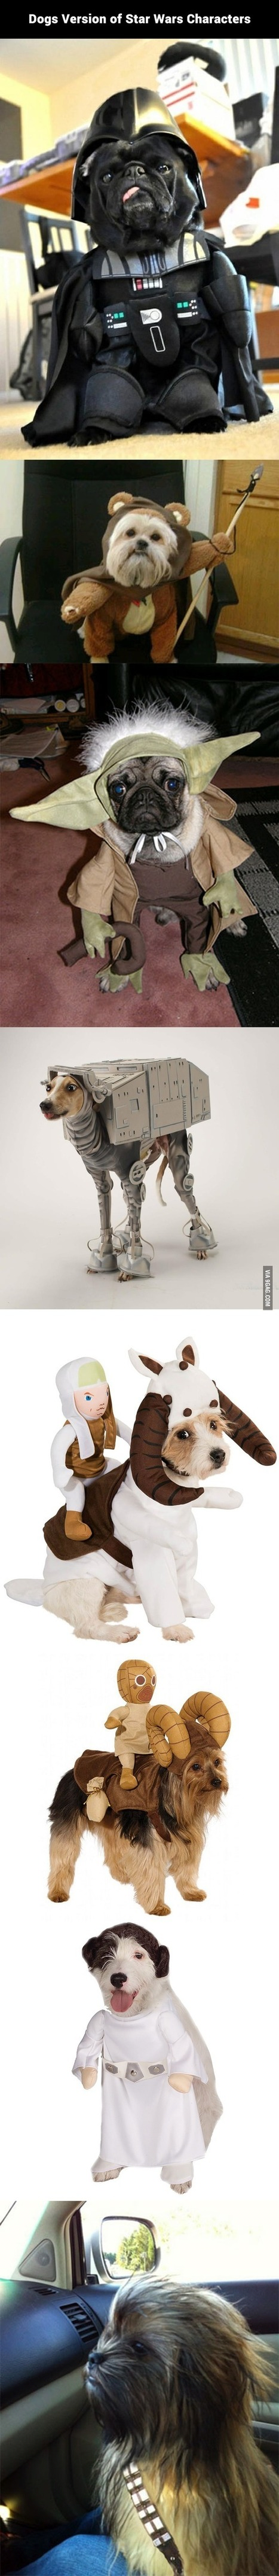 Dogs Version of Star Wars Characters | Facts and quotes | Scoop.it